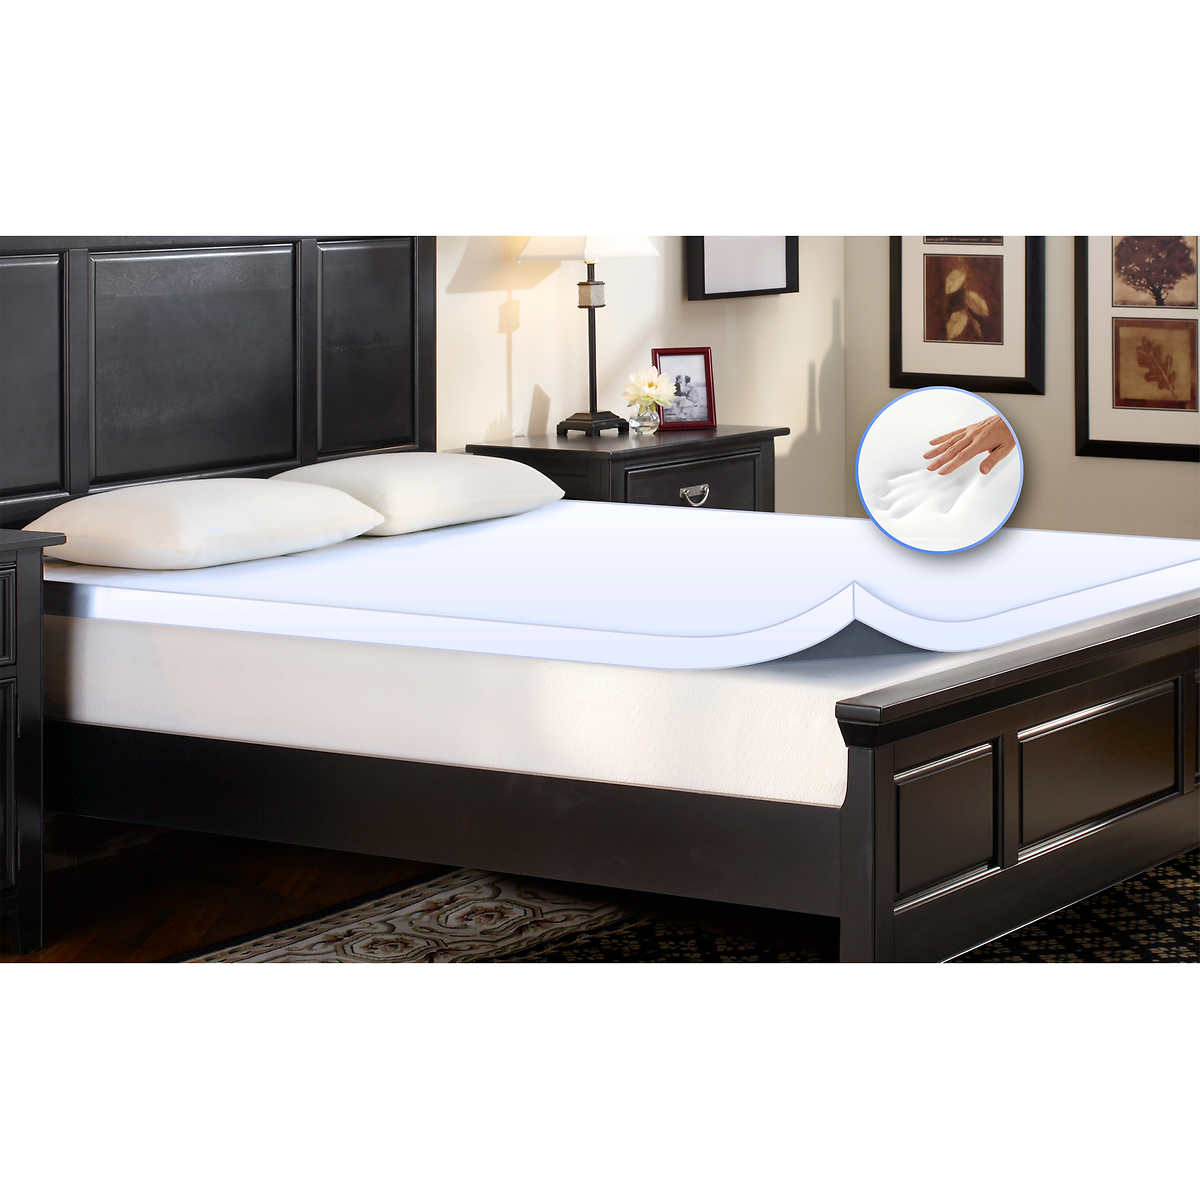 comfort revolution memory foam mattress toppers 2 inch, 3 inch or